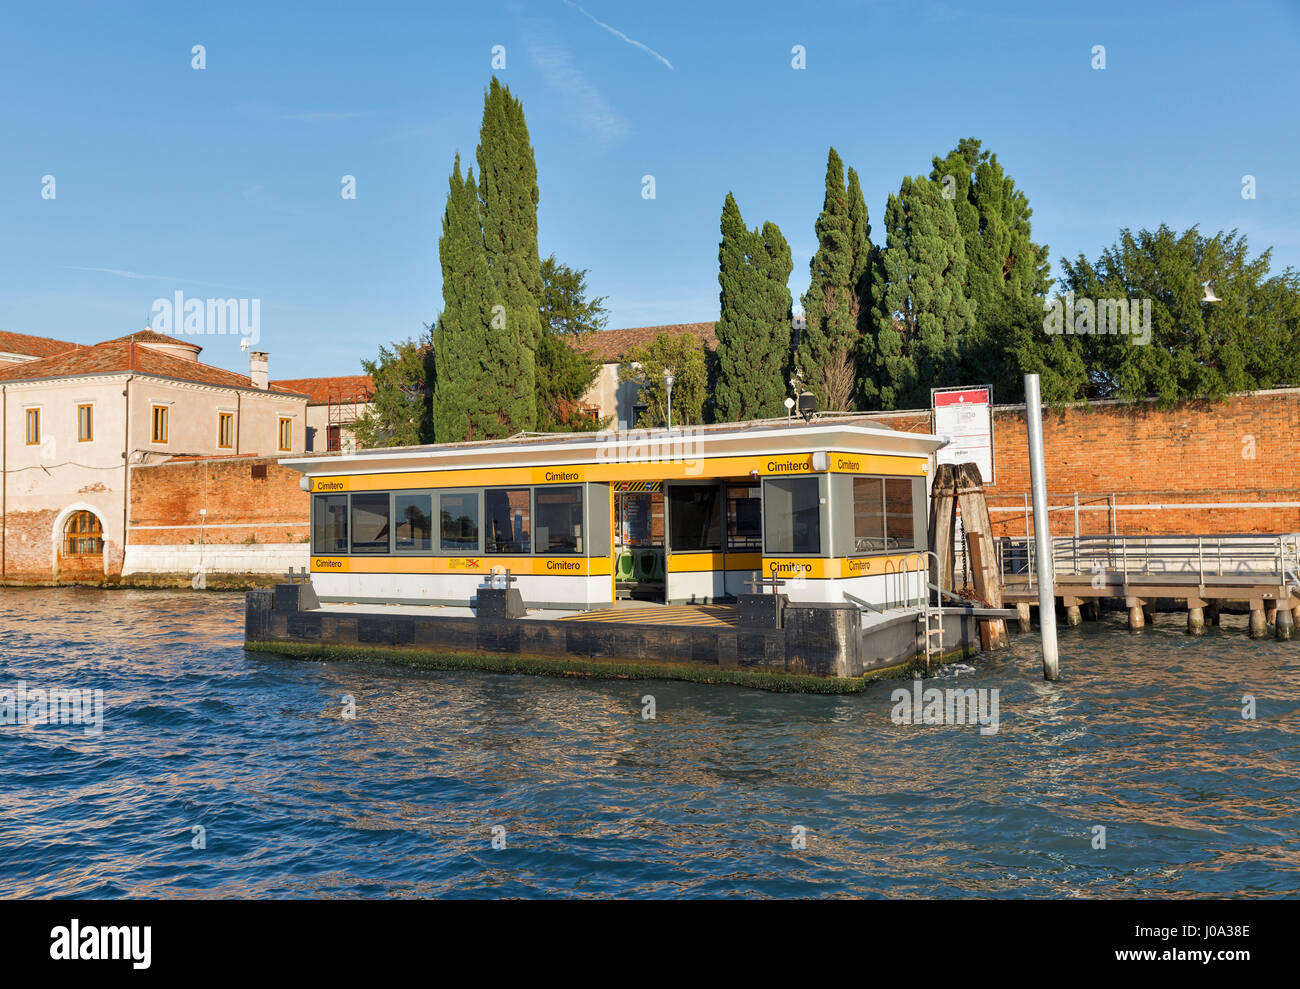 VENICE, ITALY - SEPTEMBER 22, 2016: Cemetery water bus station on San Michele cemetery island. Venice is situated - Stock Image